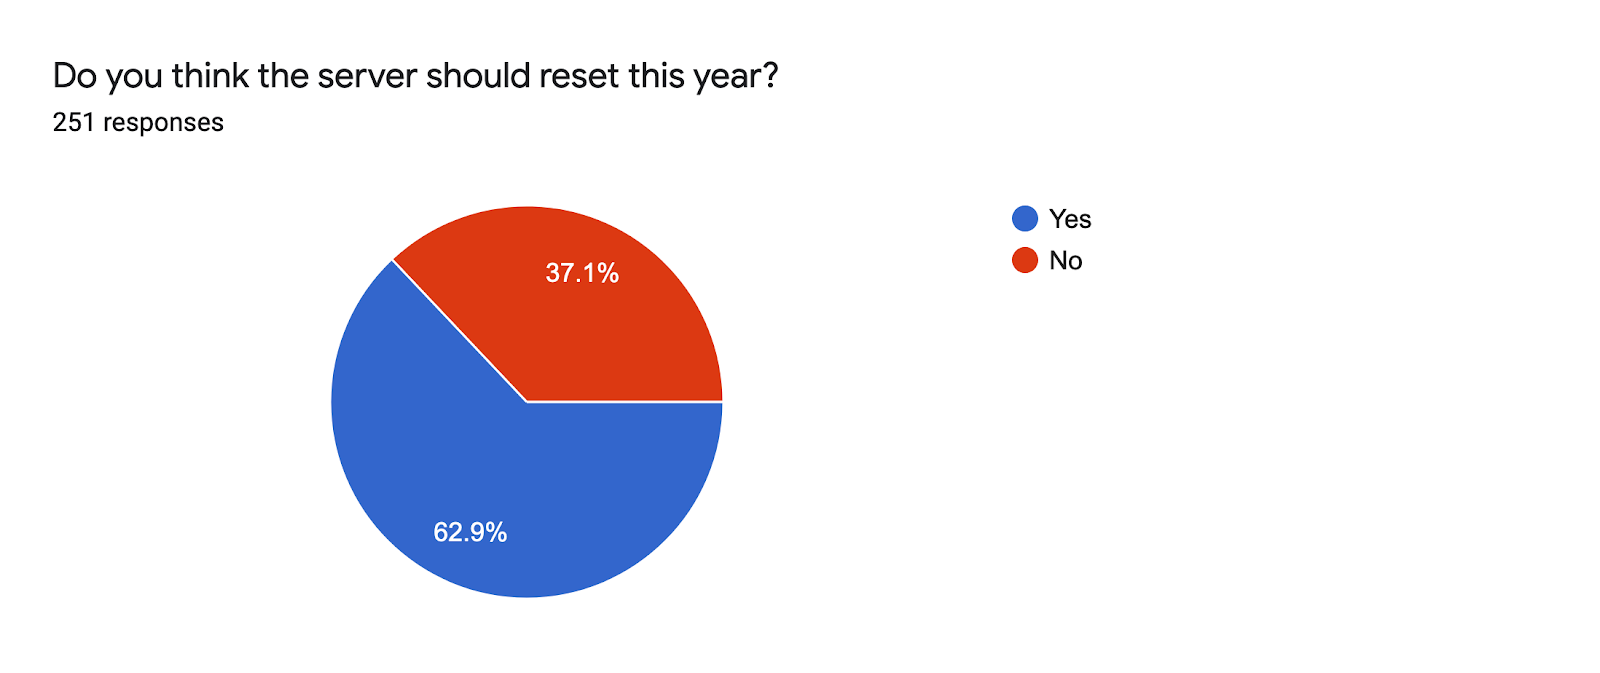 Forms response chart. Question title: Do you think the server should reset this year? . Number of responses: 251 responses.